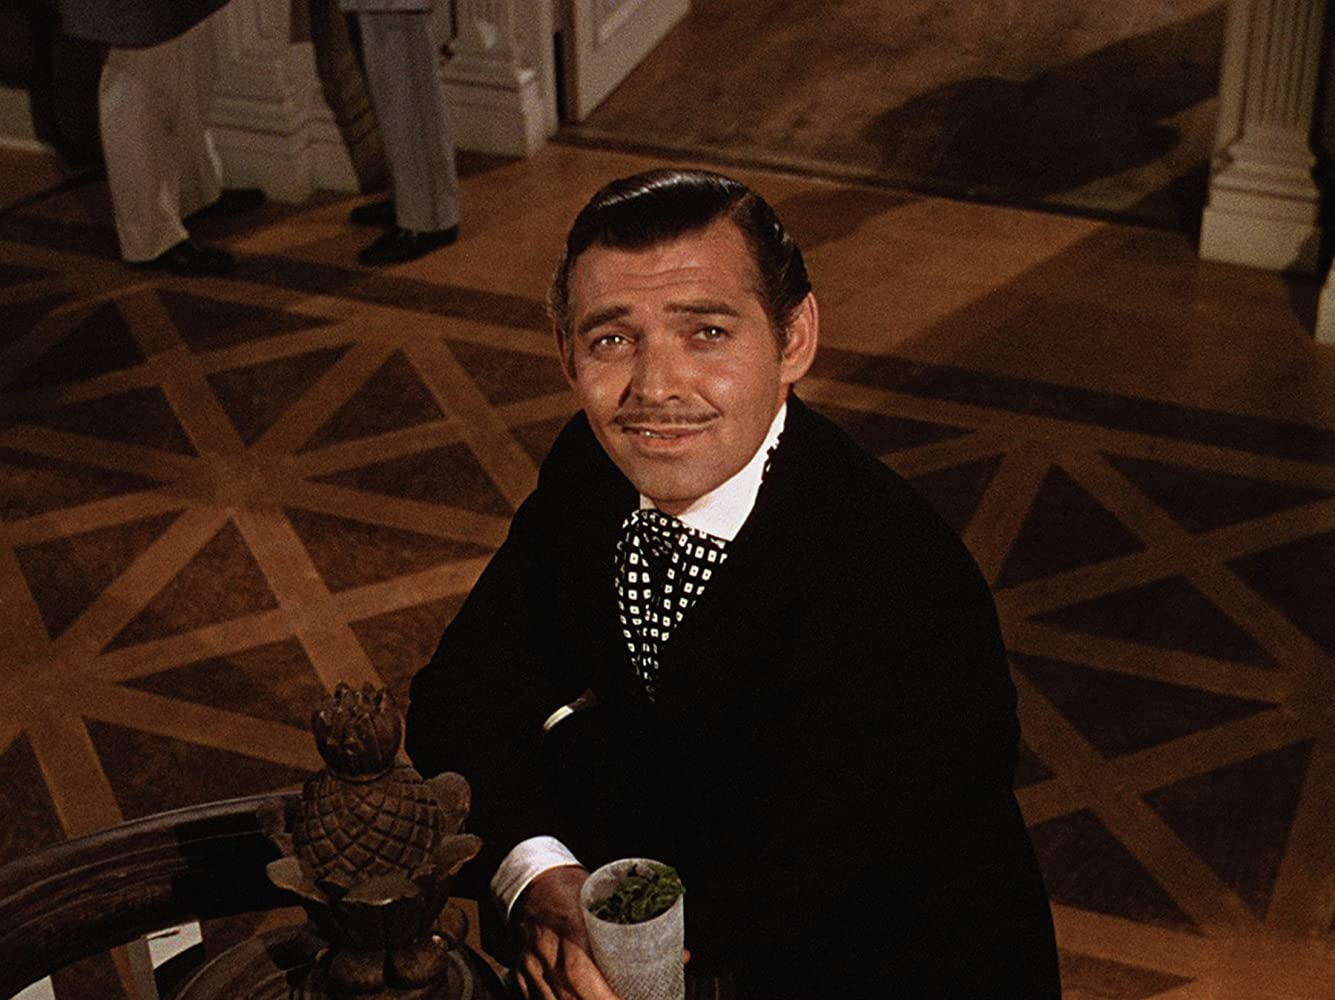 Clark Gable in Gone with the Wind 1939